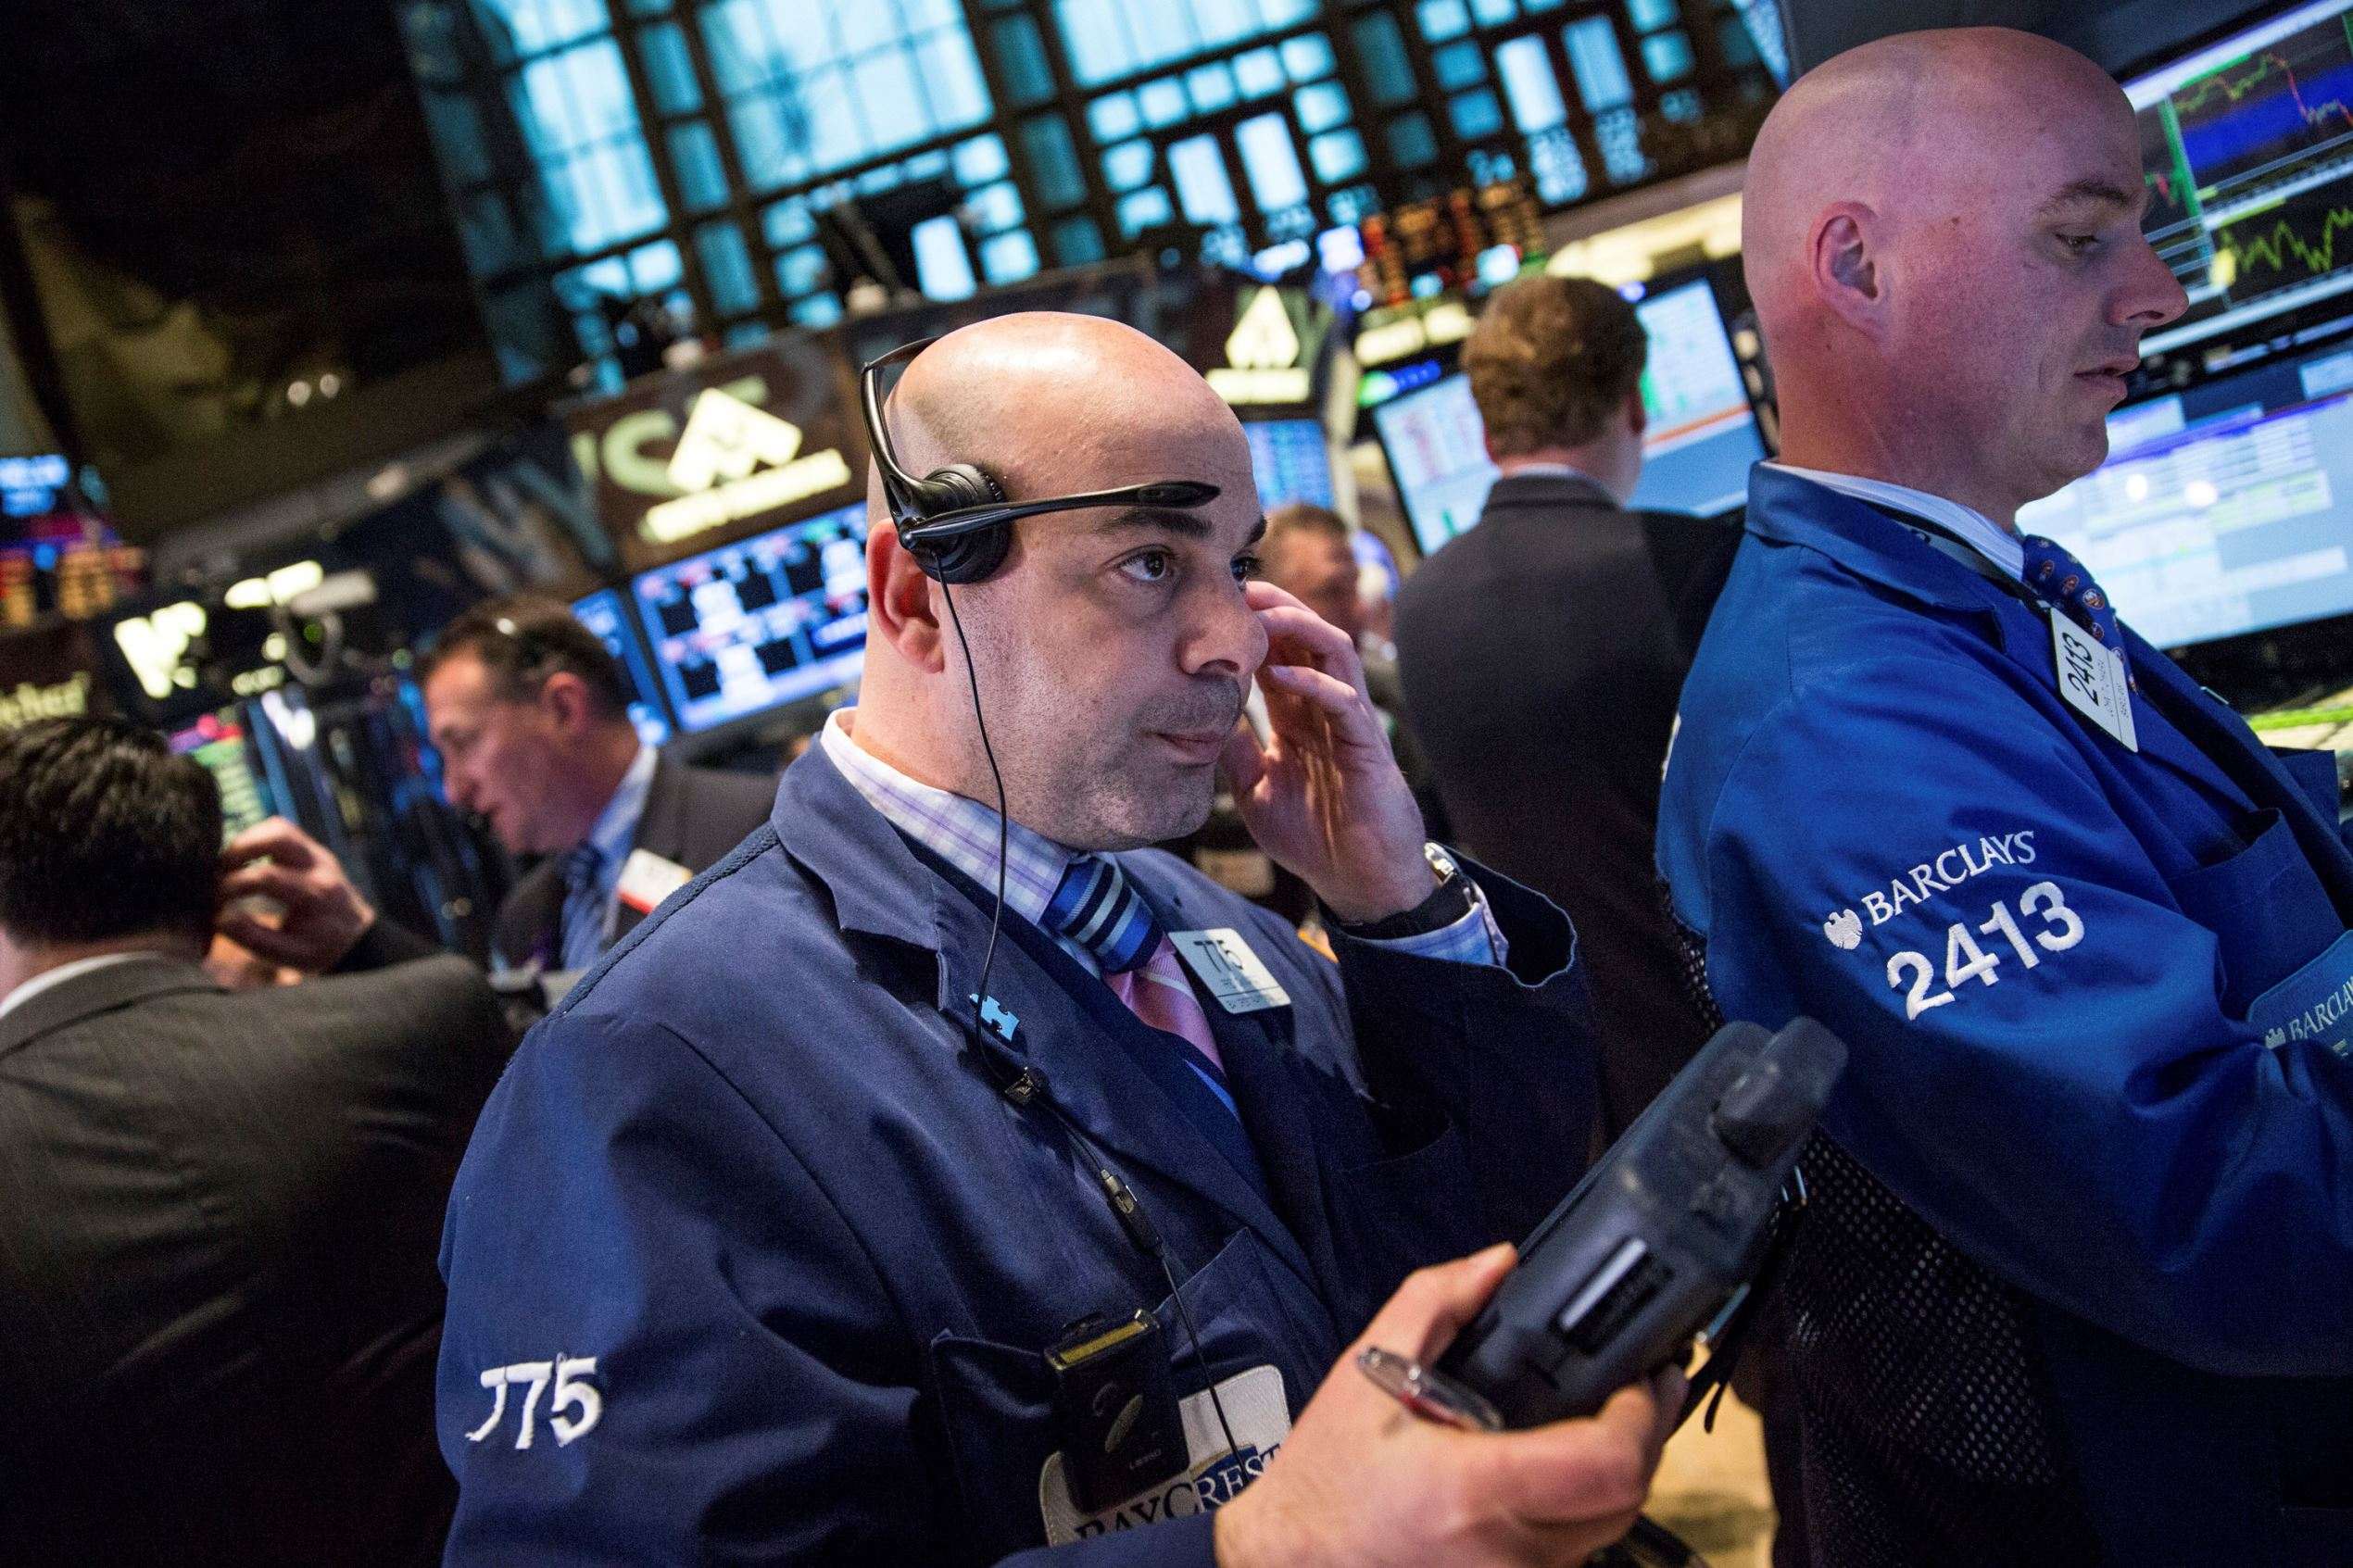 Wild stock market swings continue as Dow falls 1,467 points